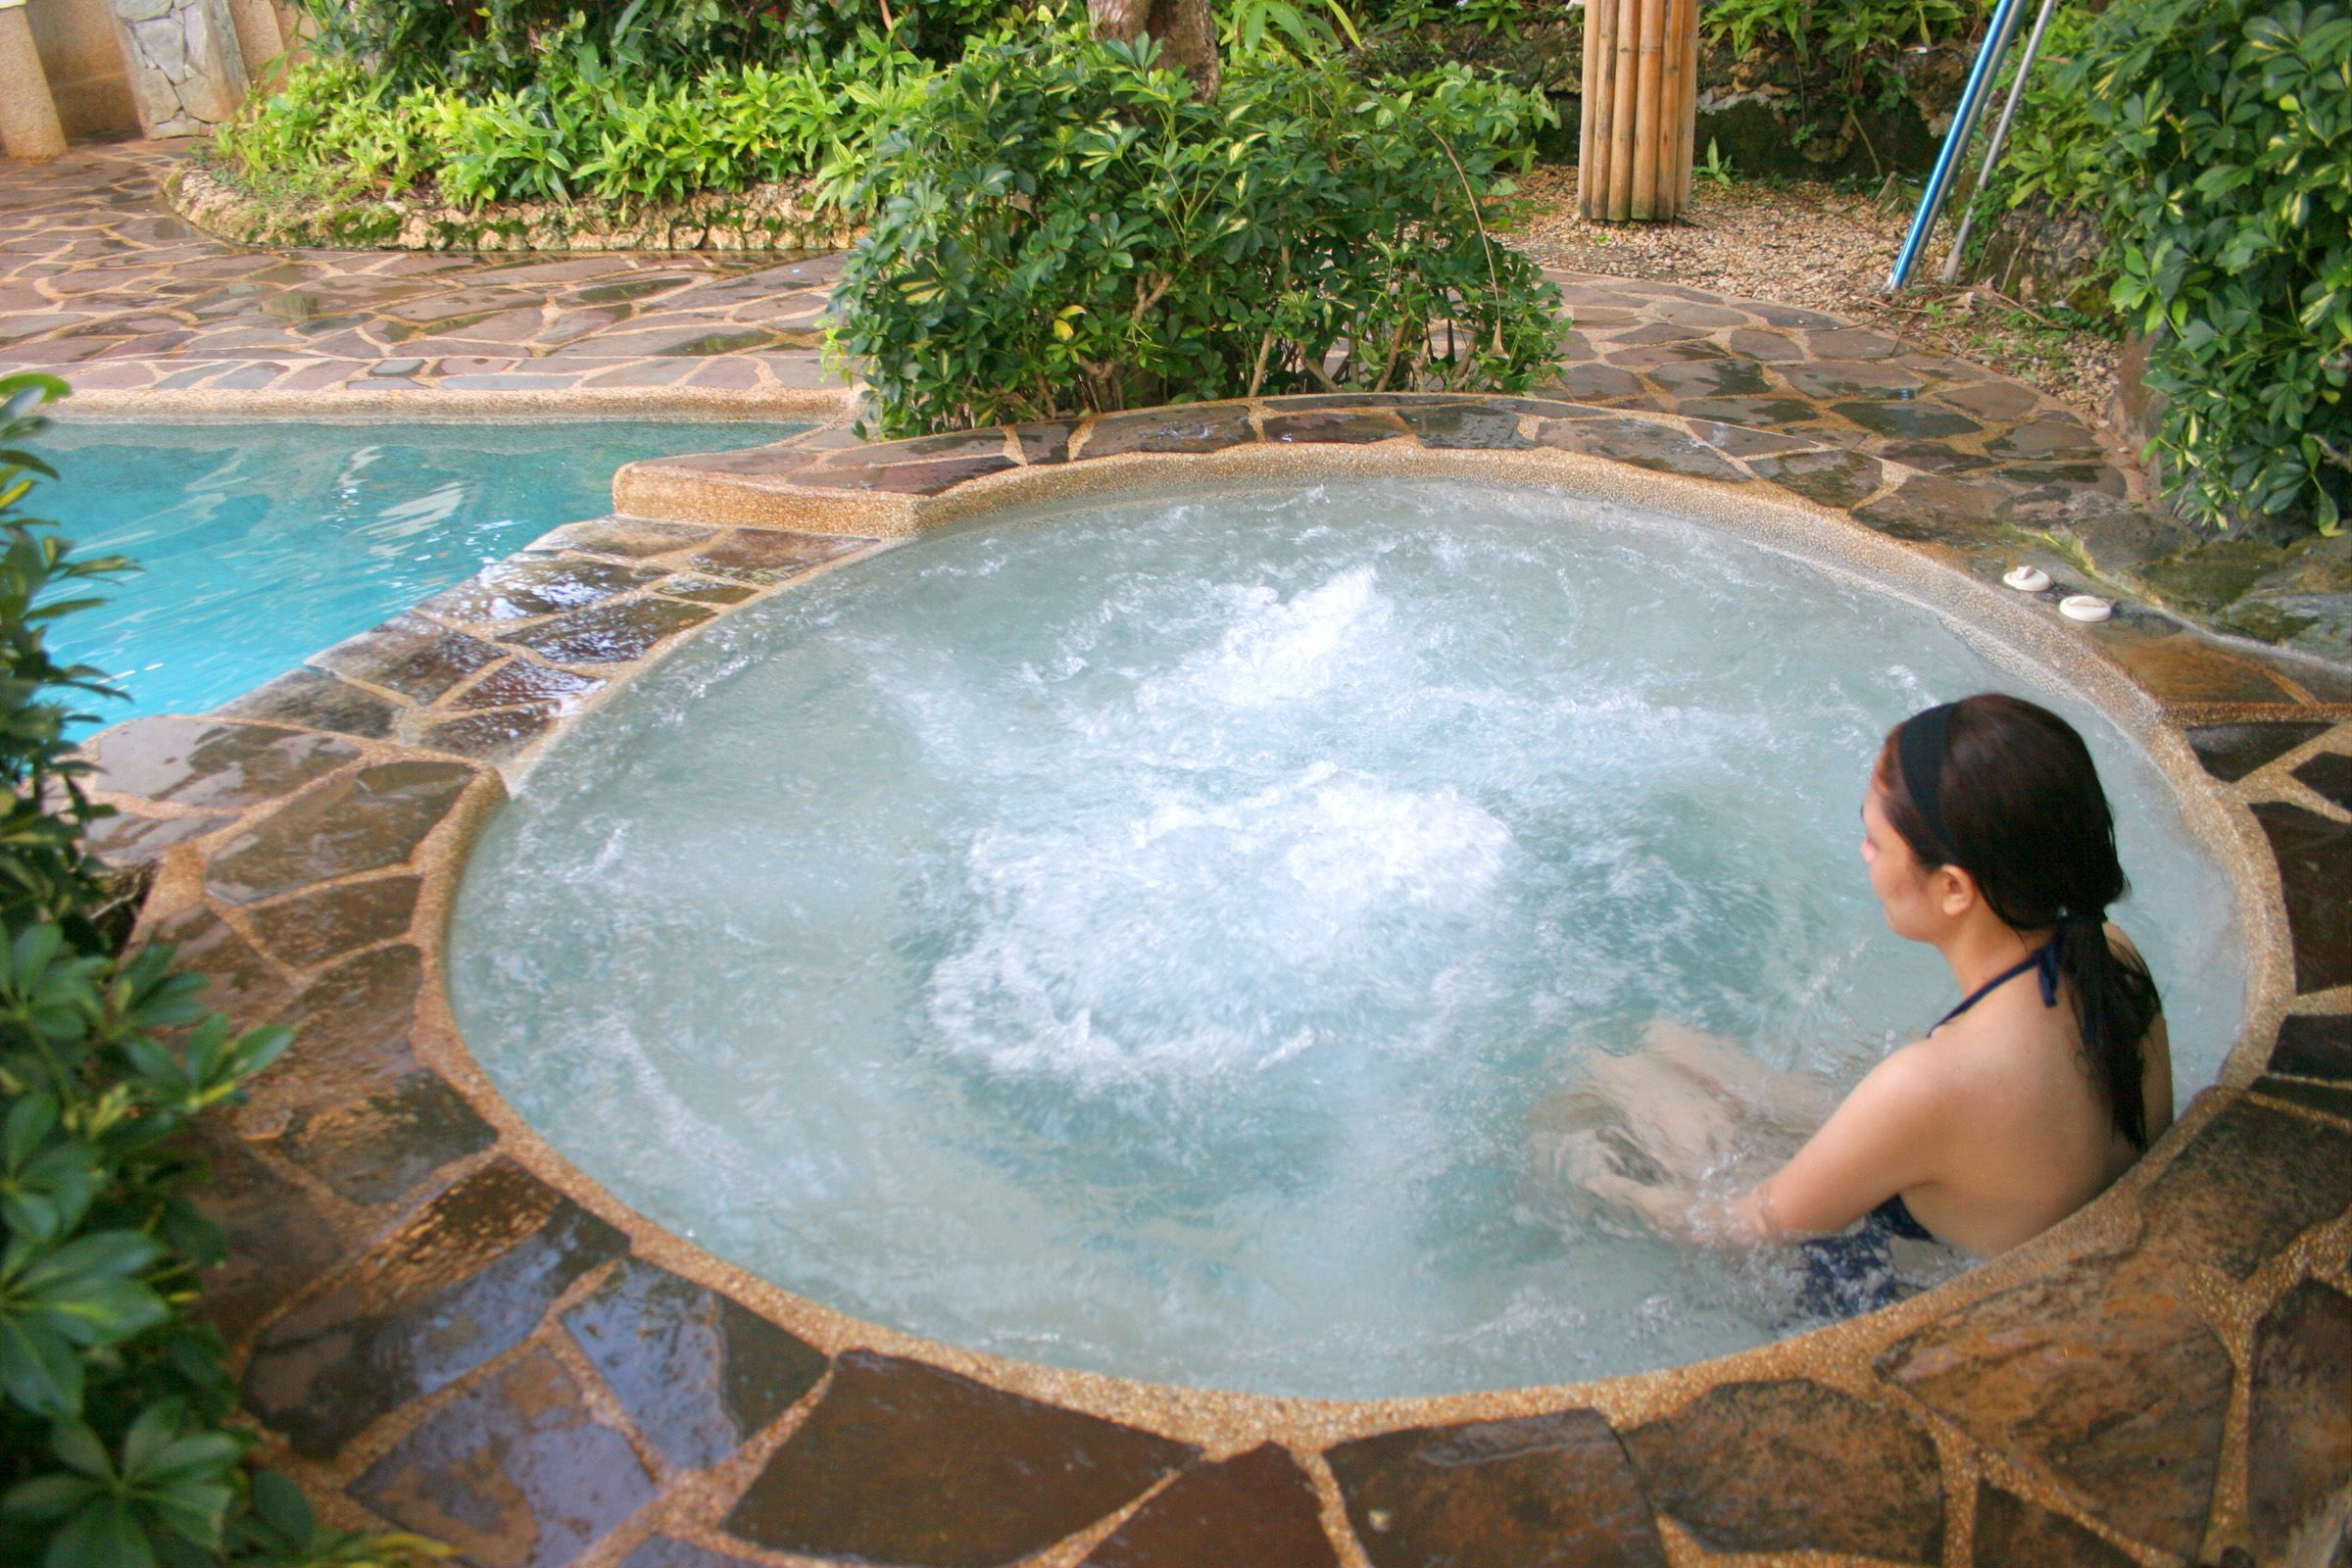 Homemade Hot Tub Fragrance | Hot tubs, Tubs and Jacuzzi